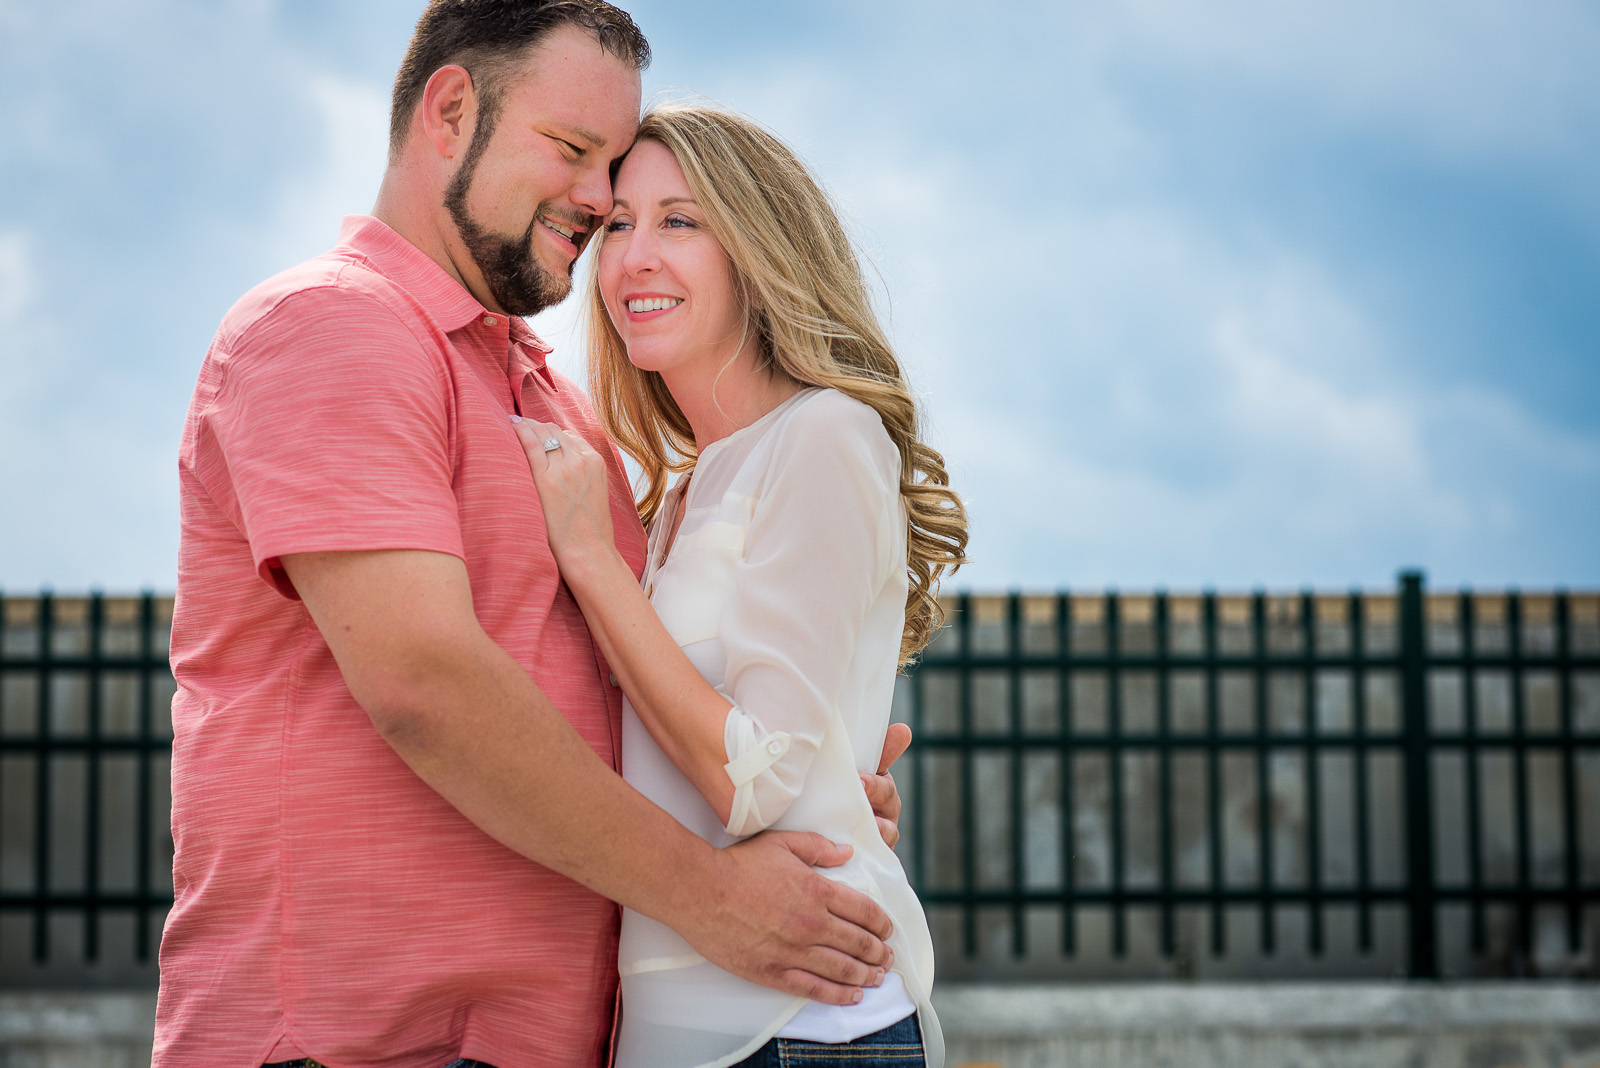 Eric_and_Christy_Photography_Blog_Kelly_Matt_Engagement-25